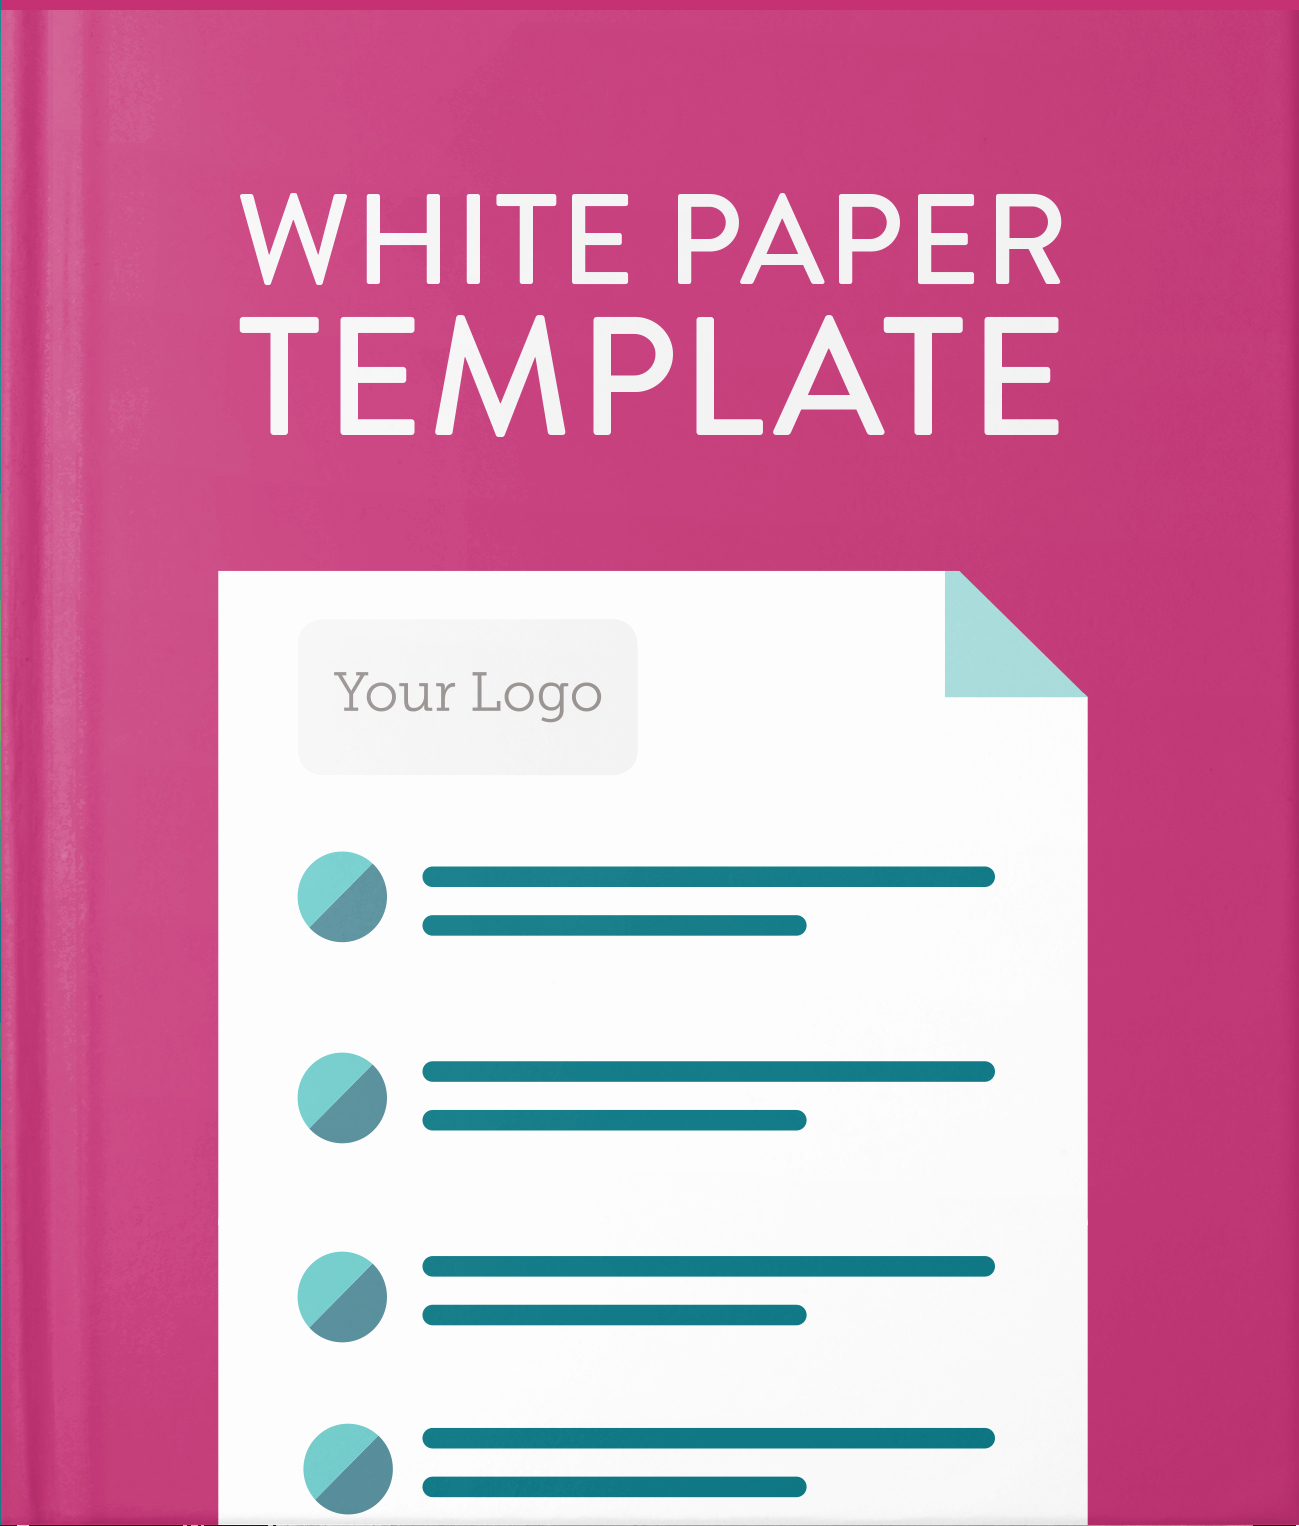 White Paper Design Template Fresh White Paper Template Hatchbuck